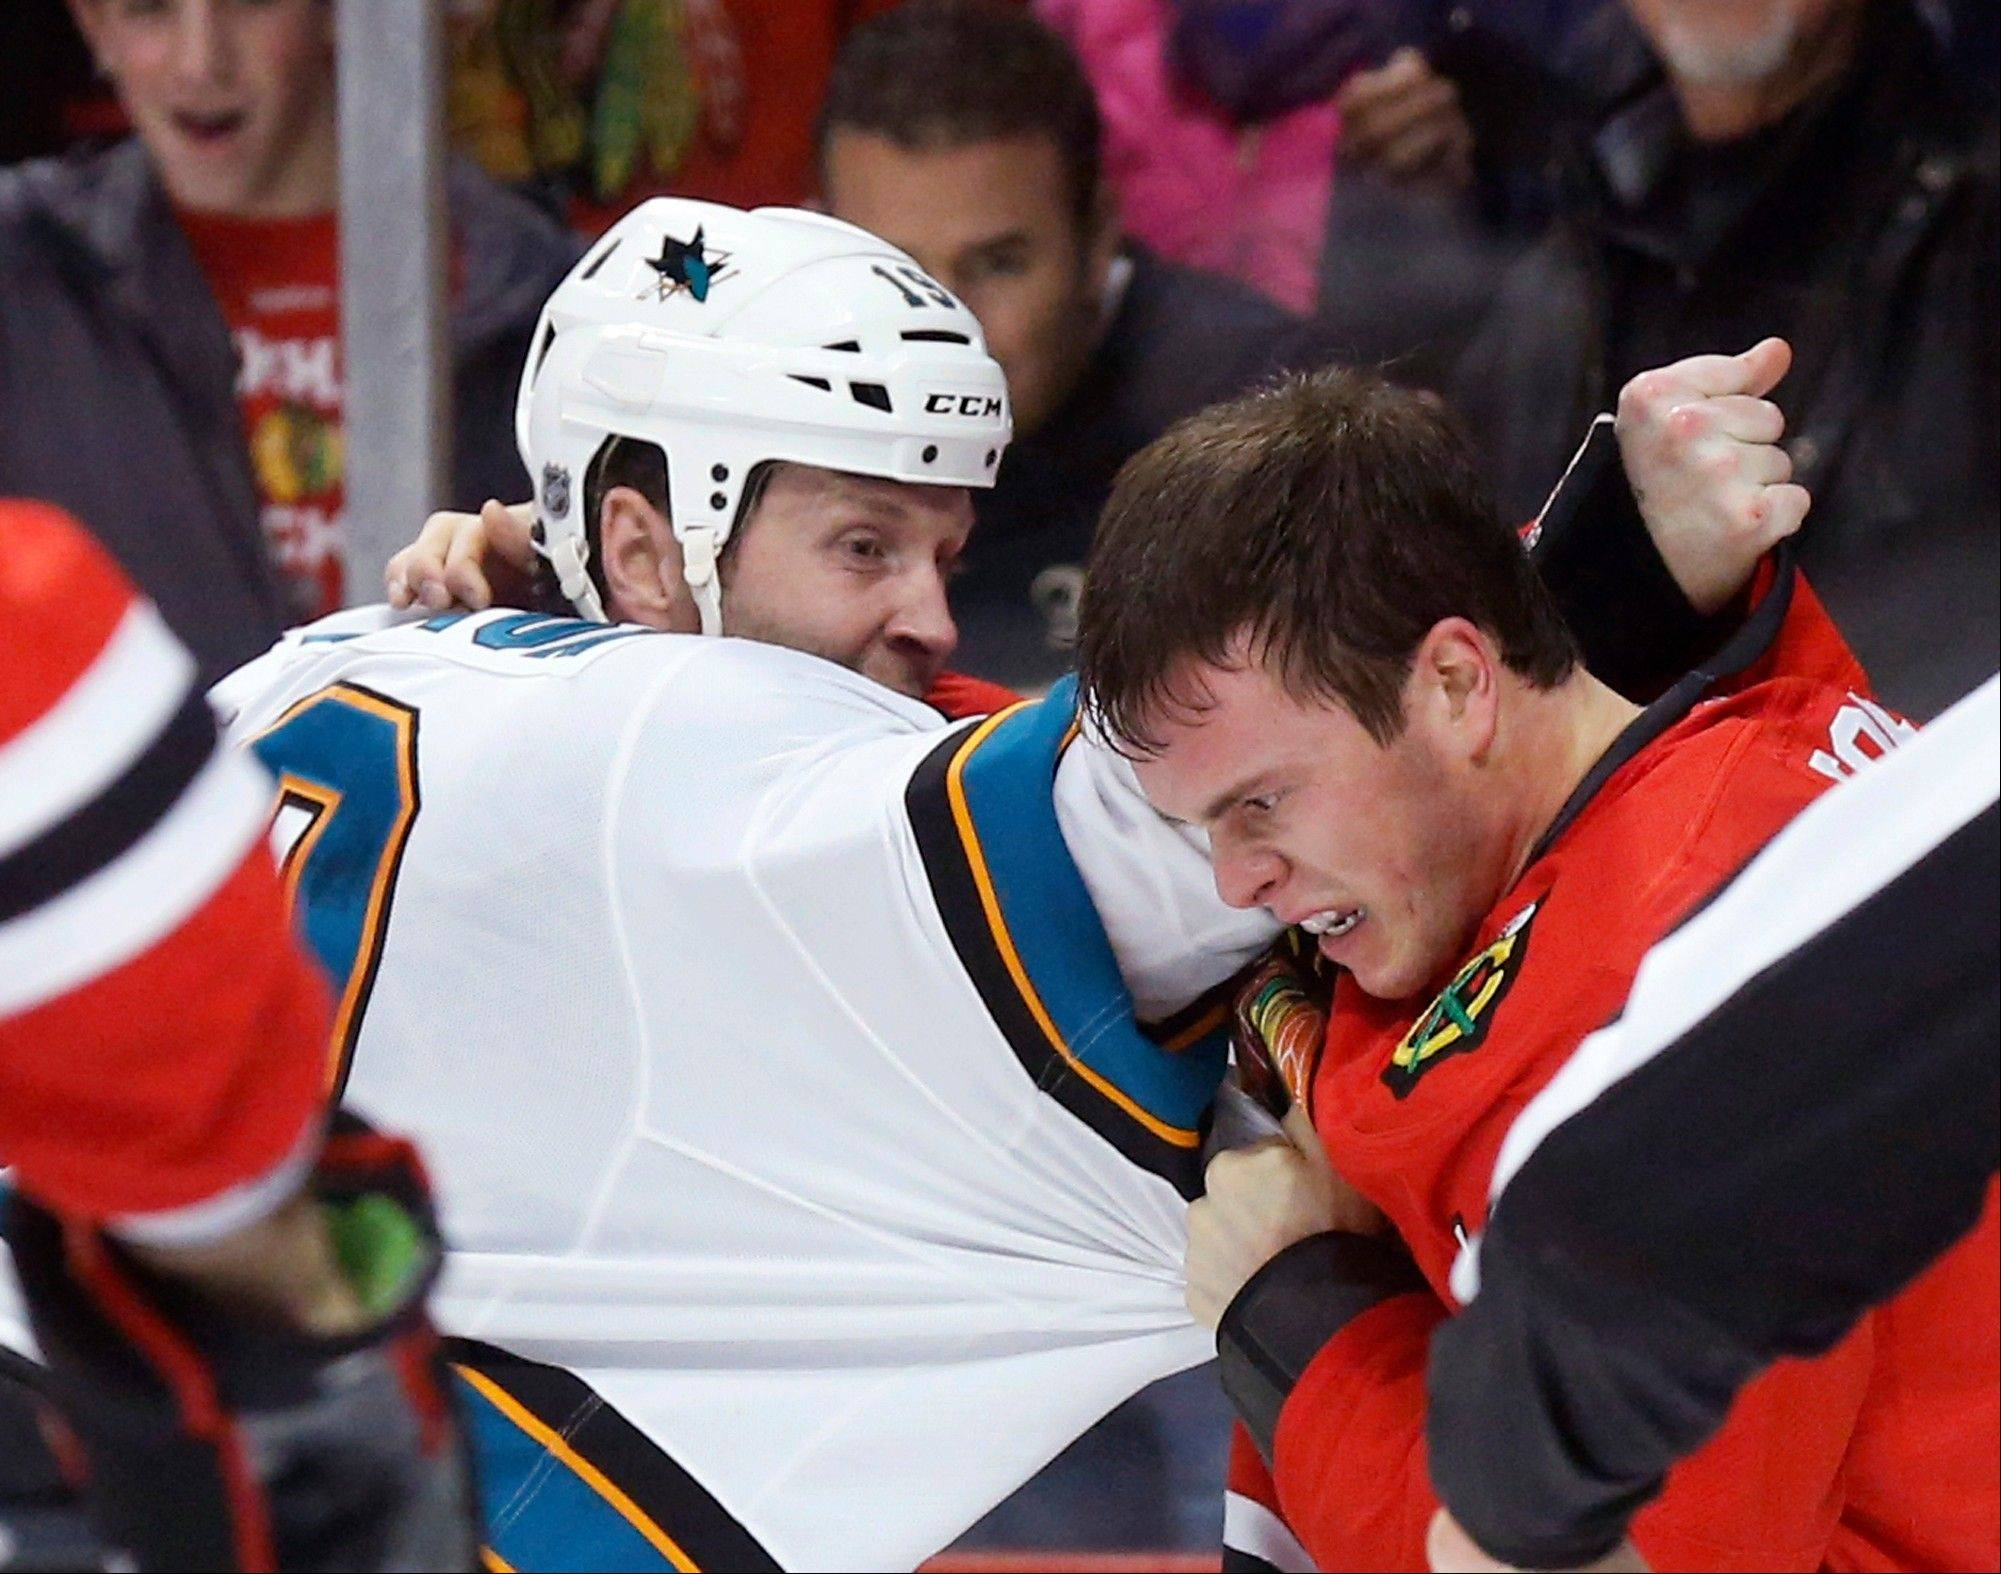 Blackhawks captain Jonathan Toews mixes it up with Sharks captain Joe Thornton in the first period Friday night at the United Center.